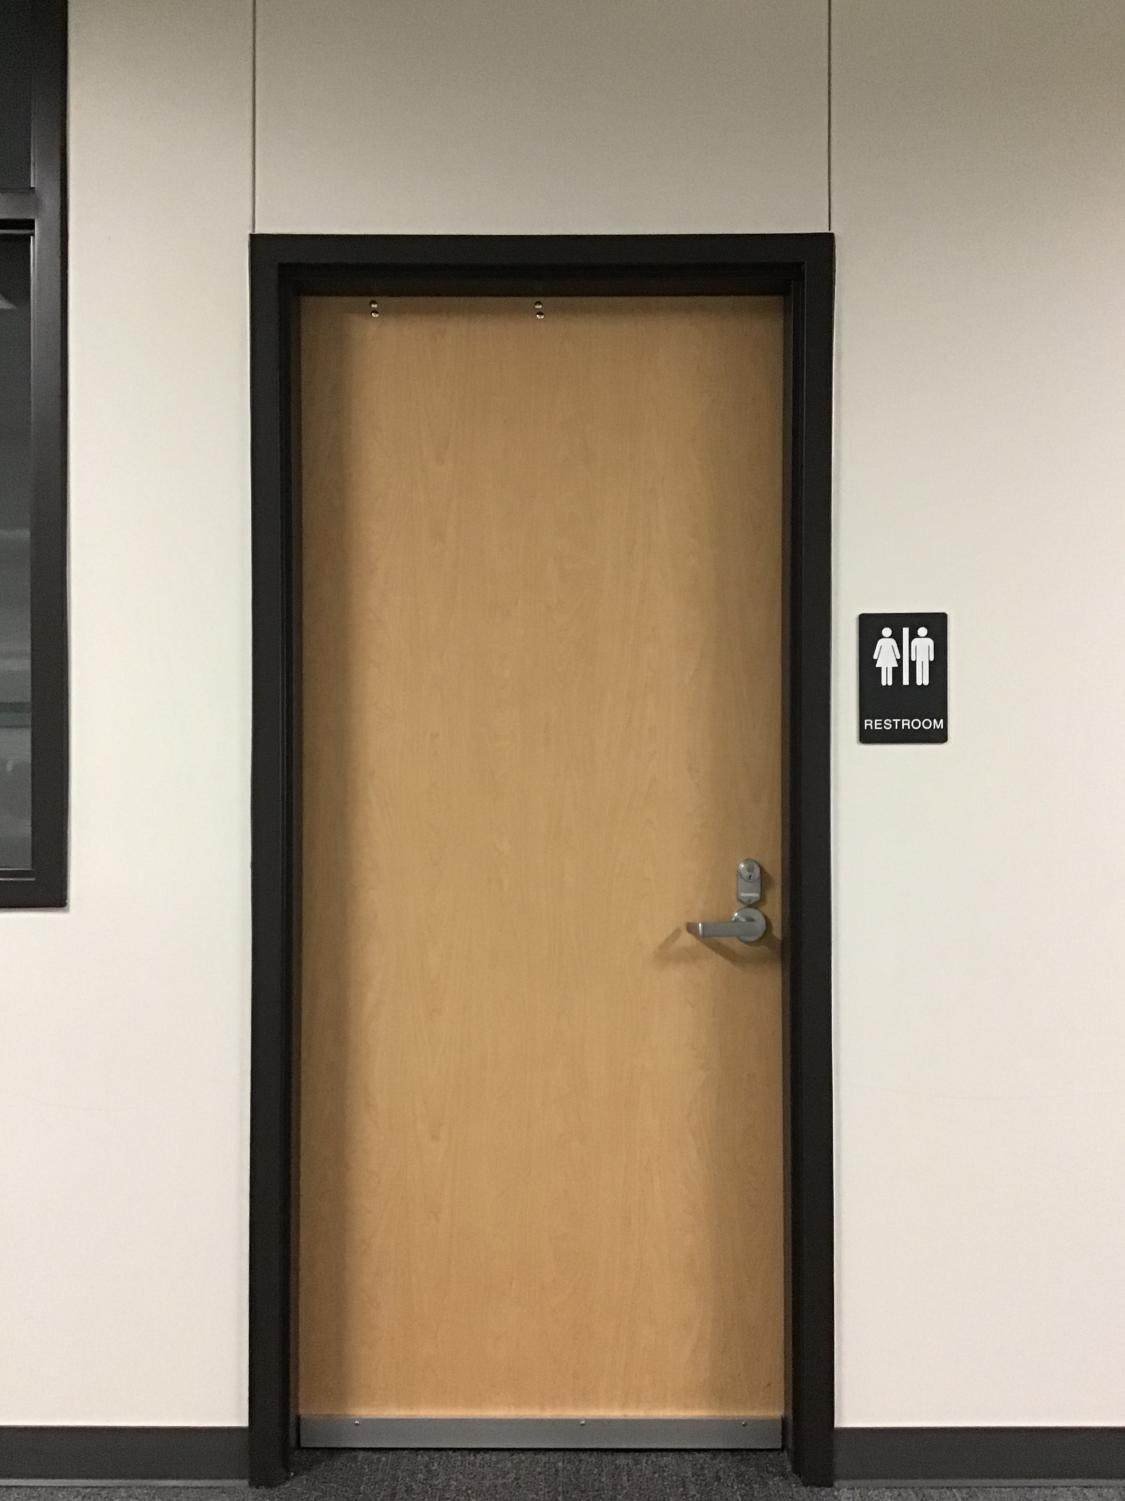 Picture of Uni-sex restroom with nobody in it.